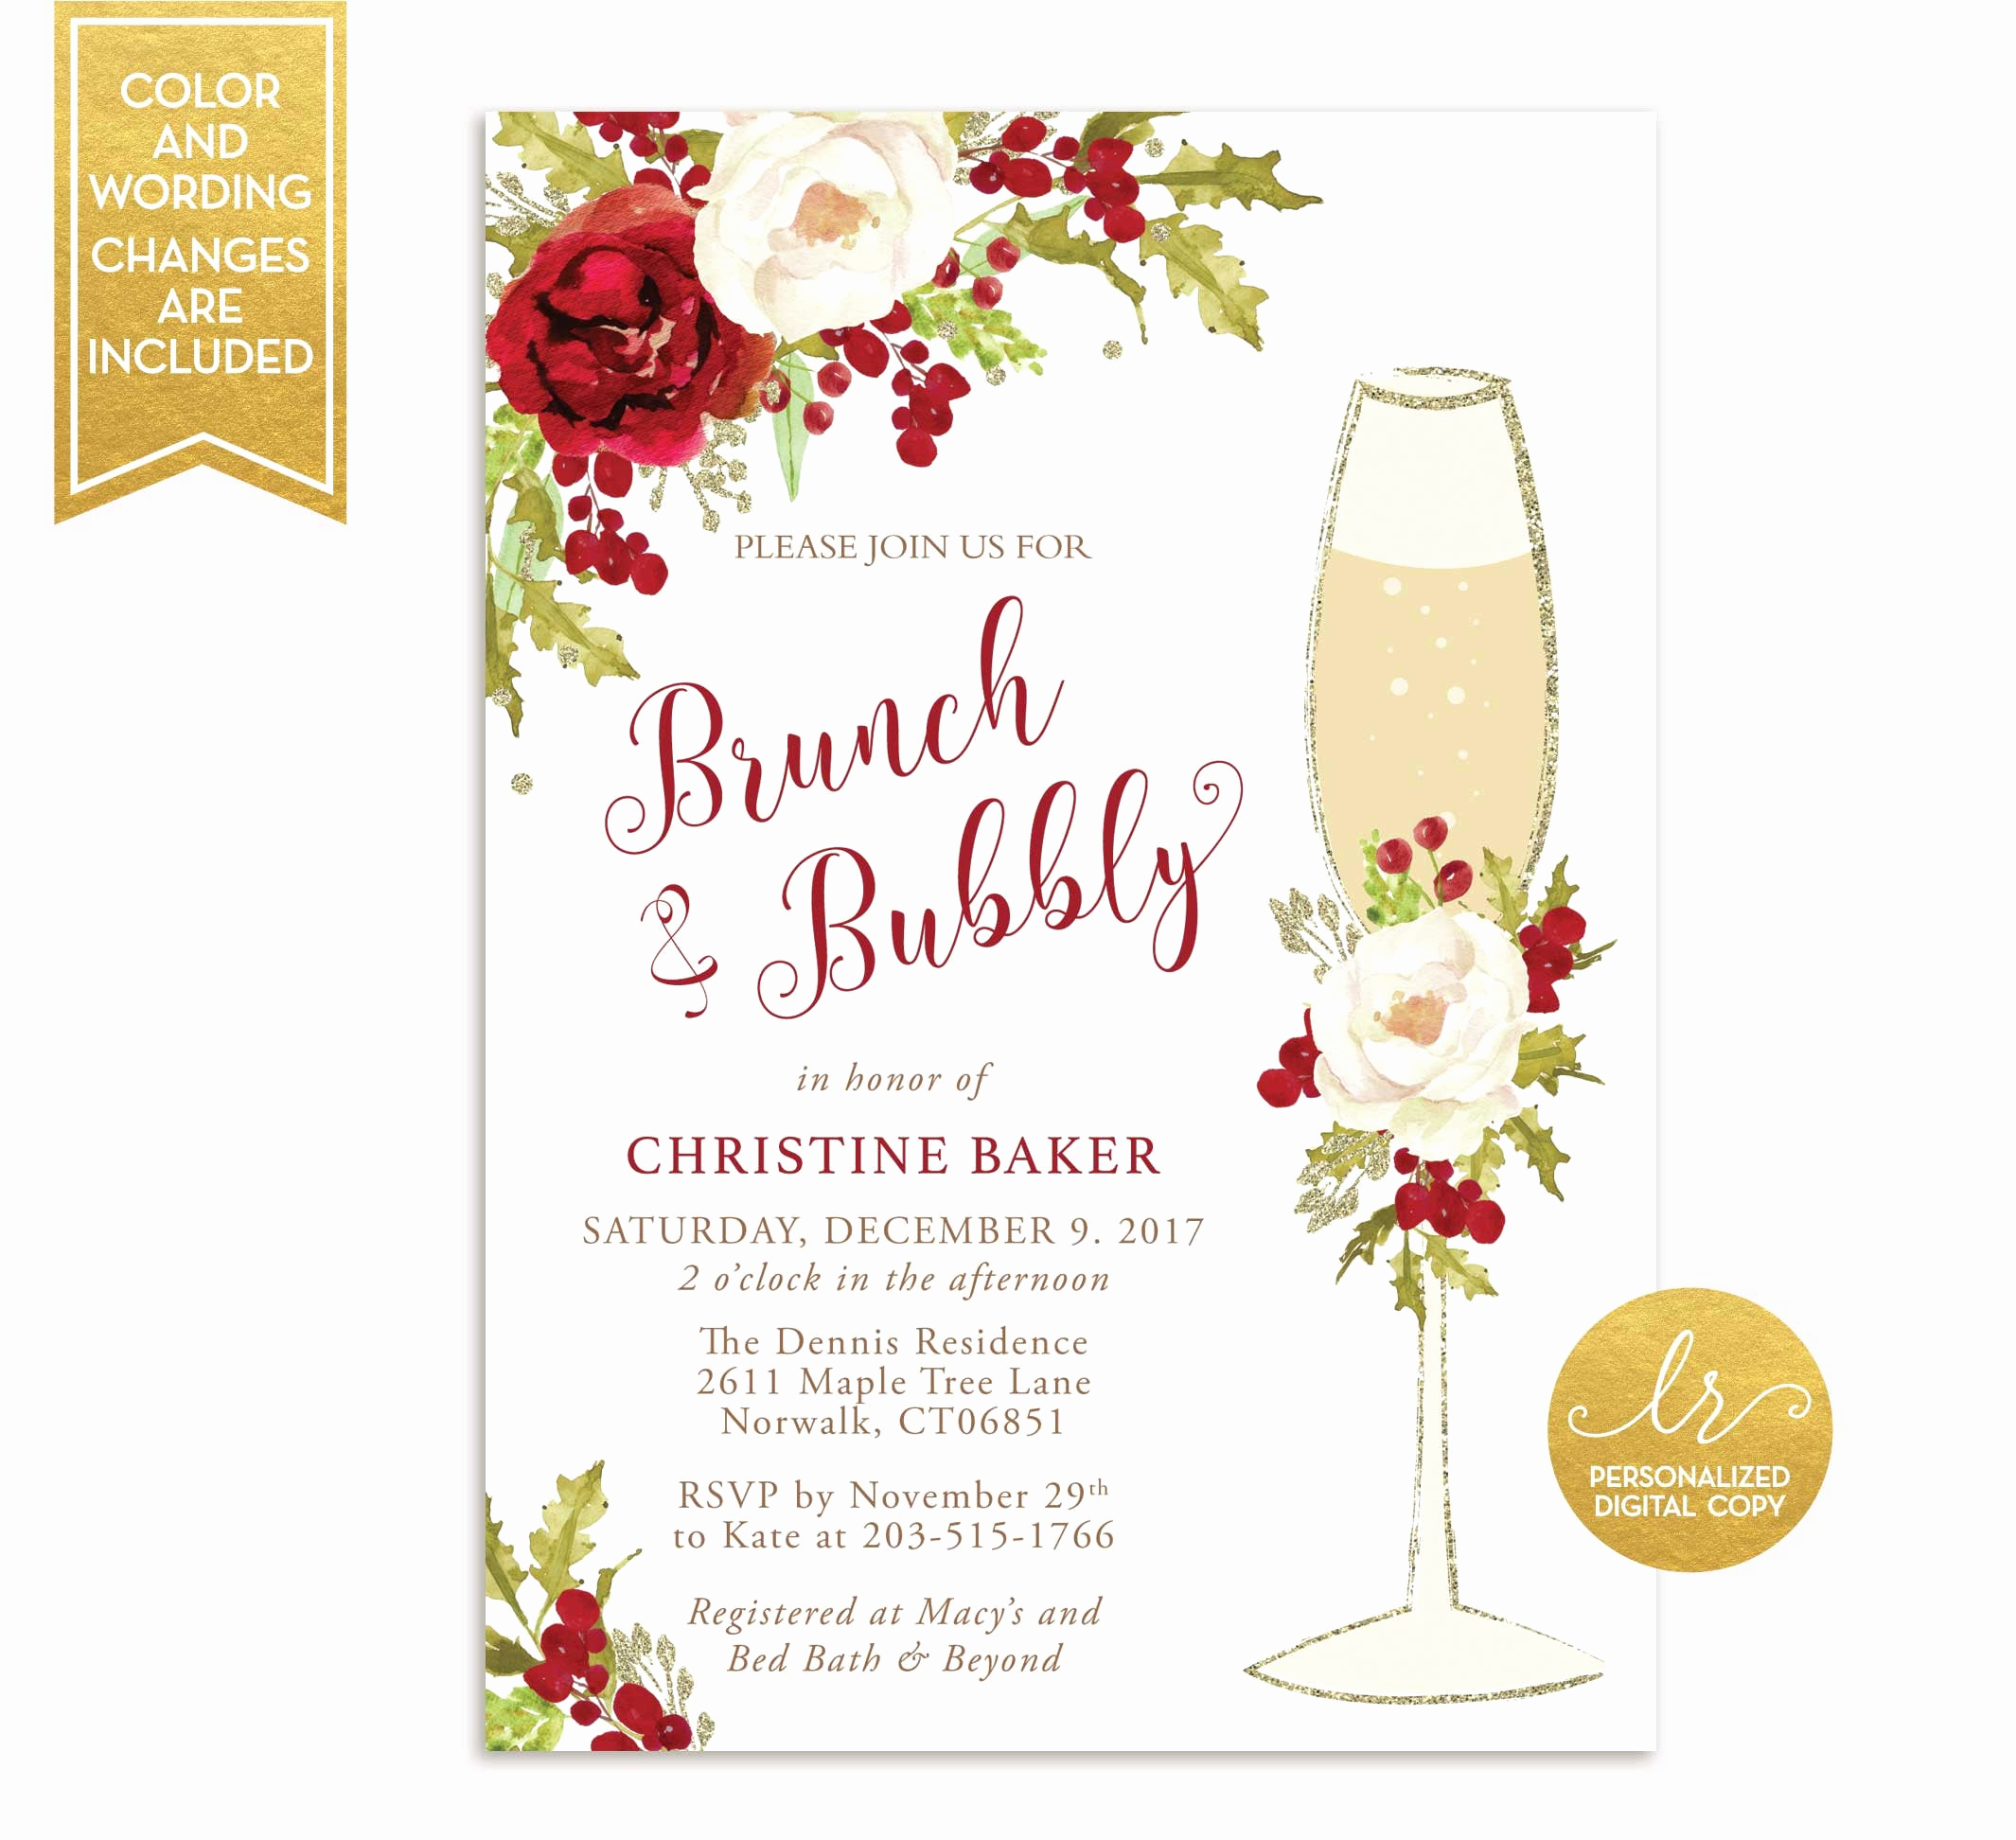 Bridal Brunch Invitation Wording Unique Winter Brunch and Bubbly Bridal Shower Invitation Holiday